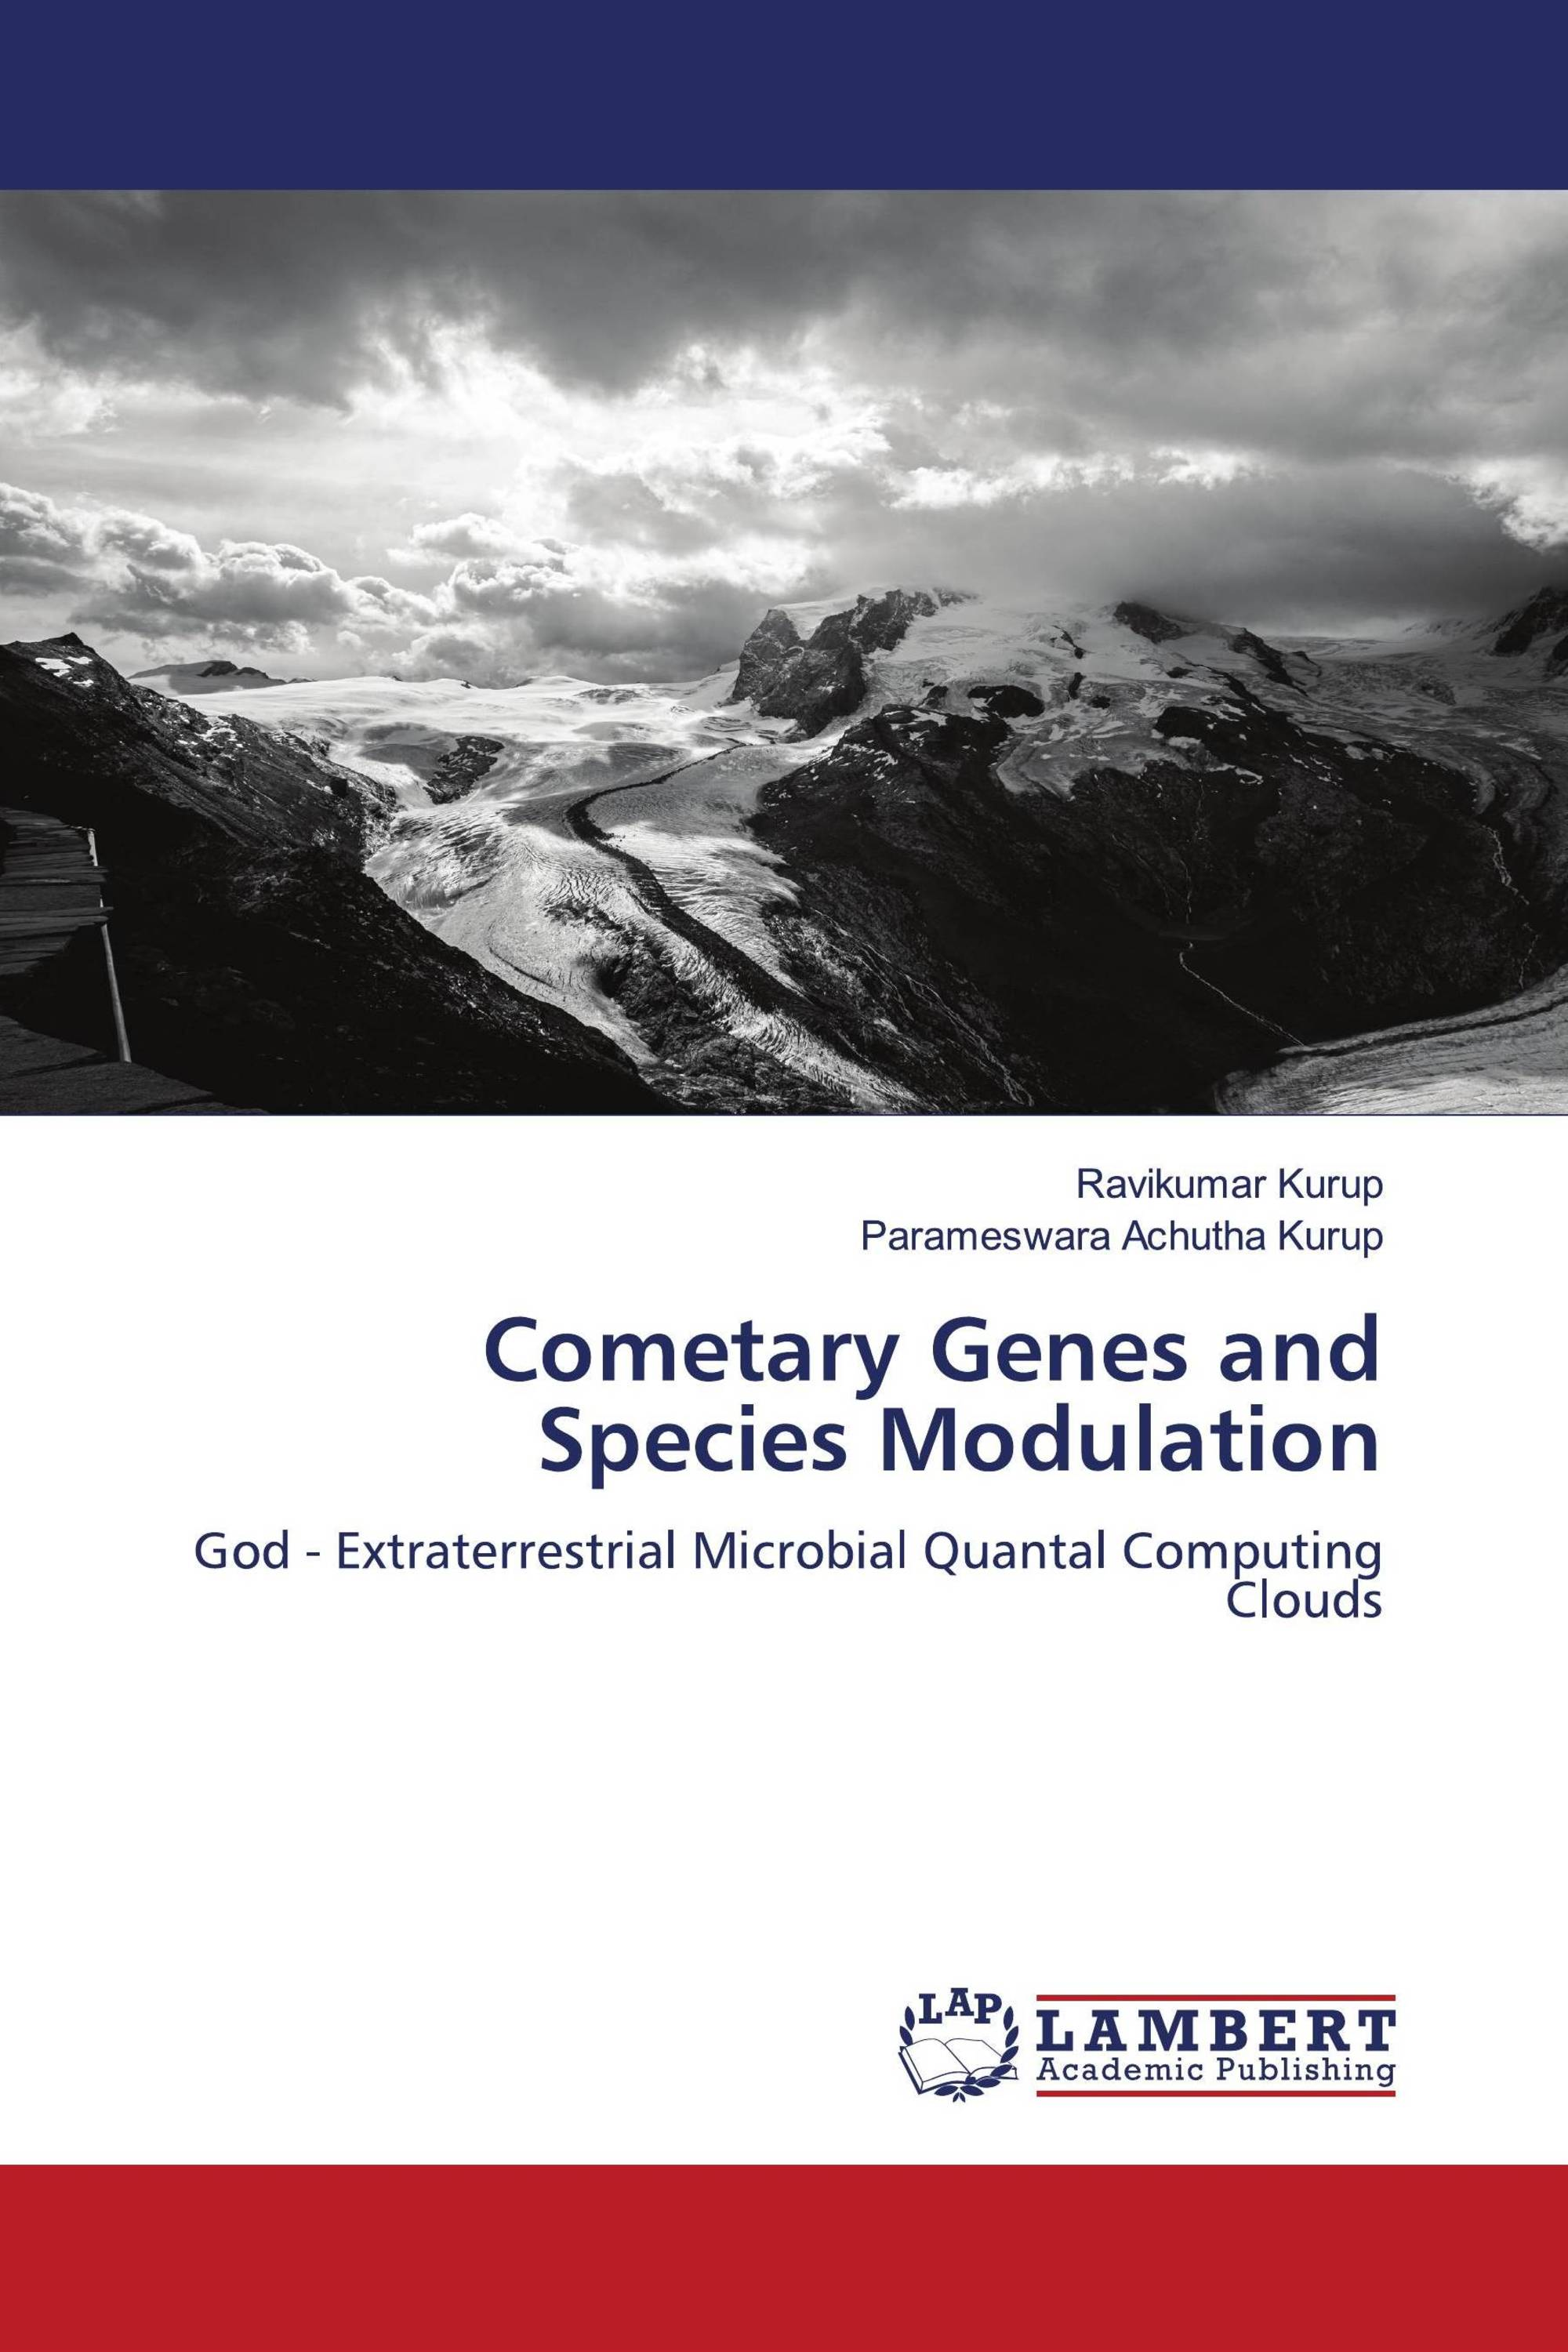 Cometary Genes and Species Modulation